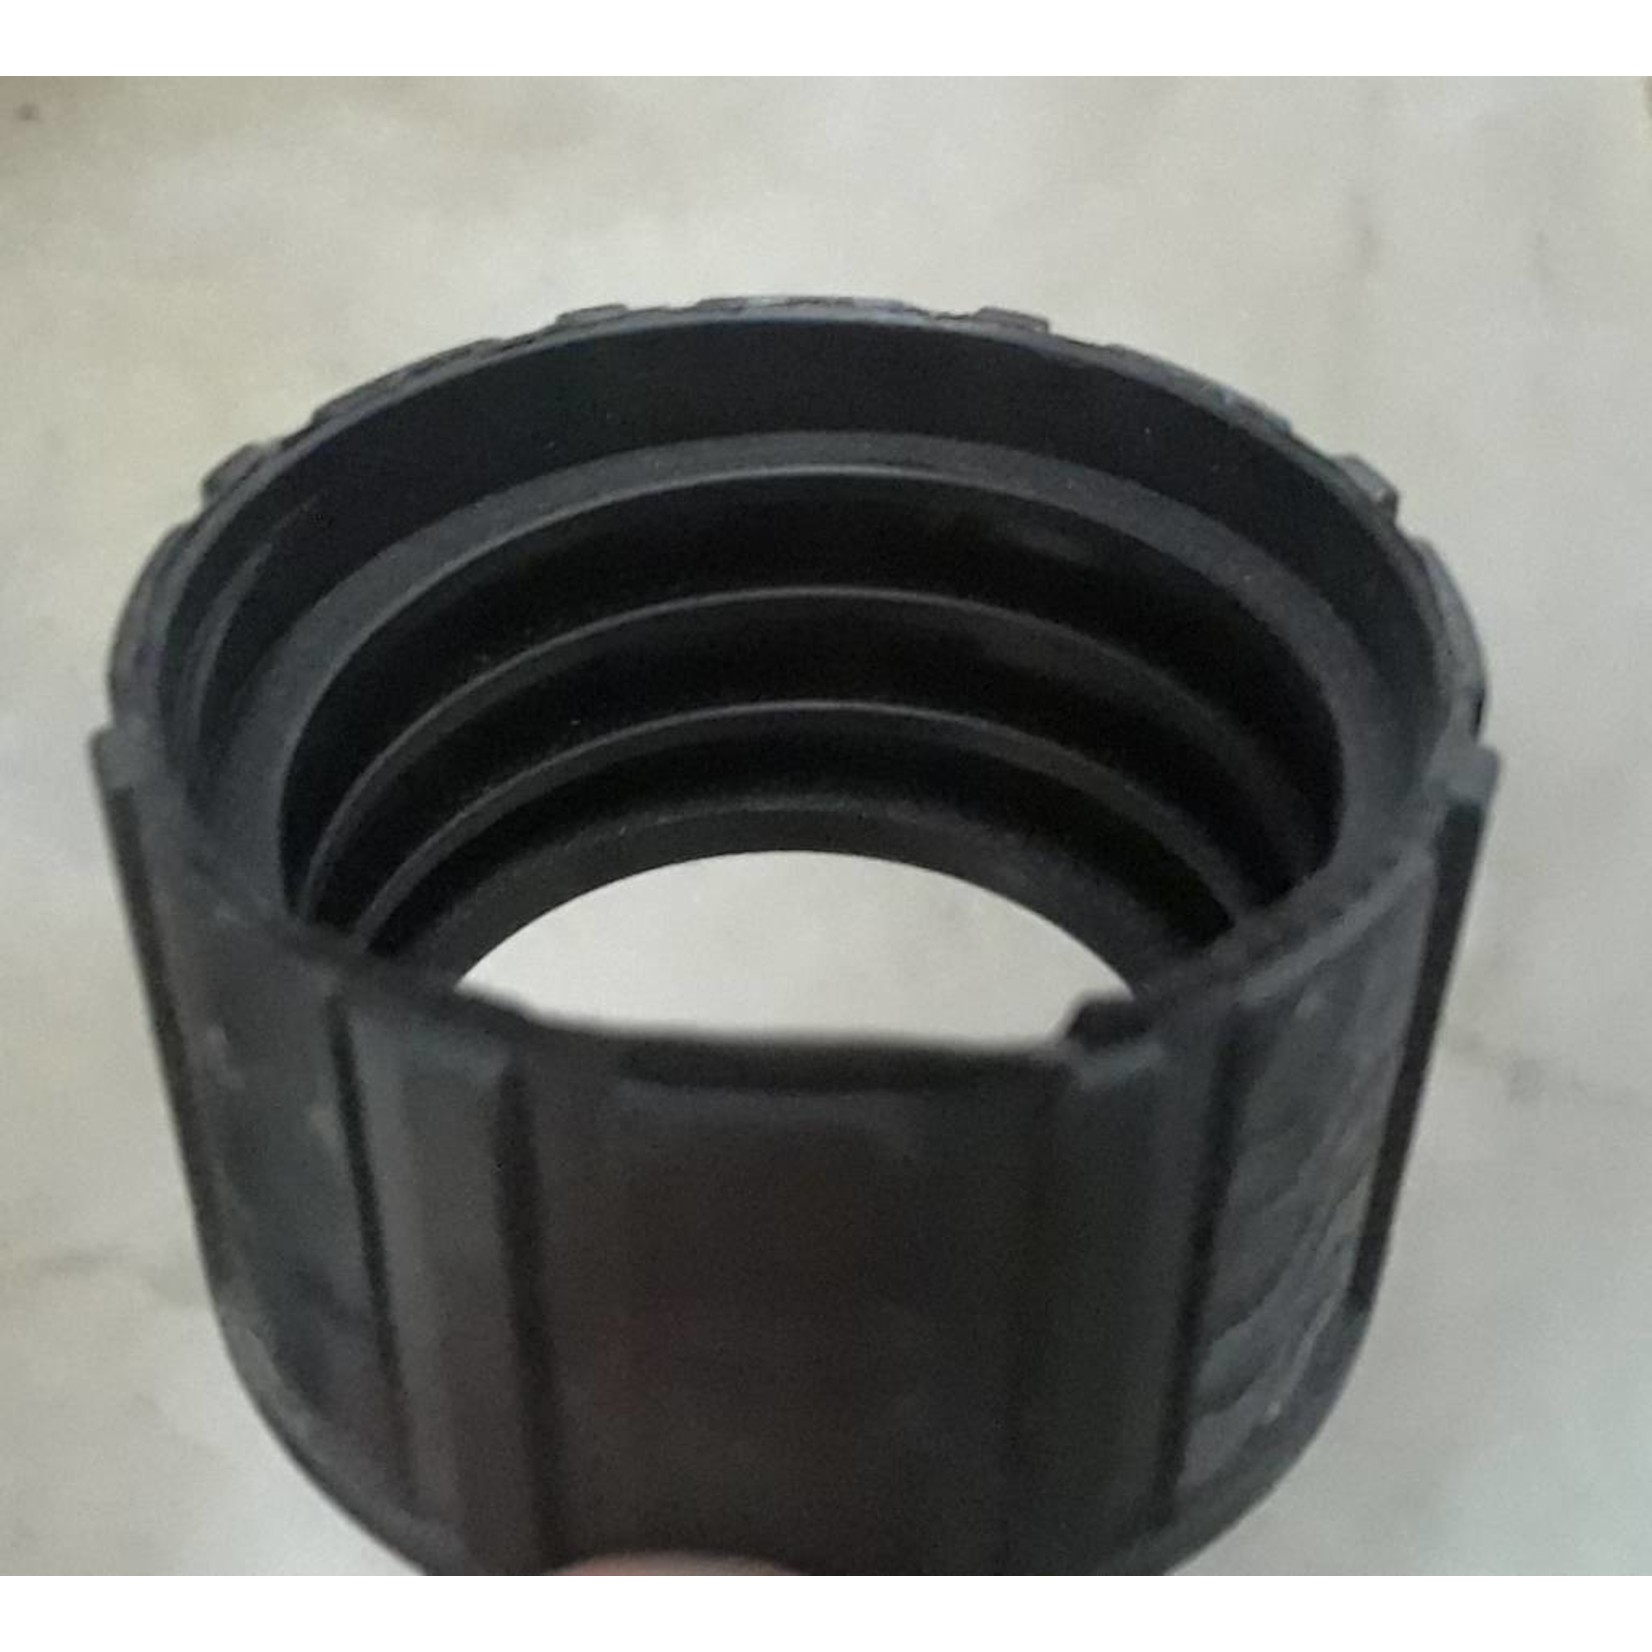 BEAM BEAM Retainer Ring for Car Care Kit Handle